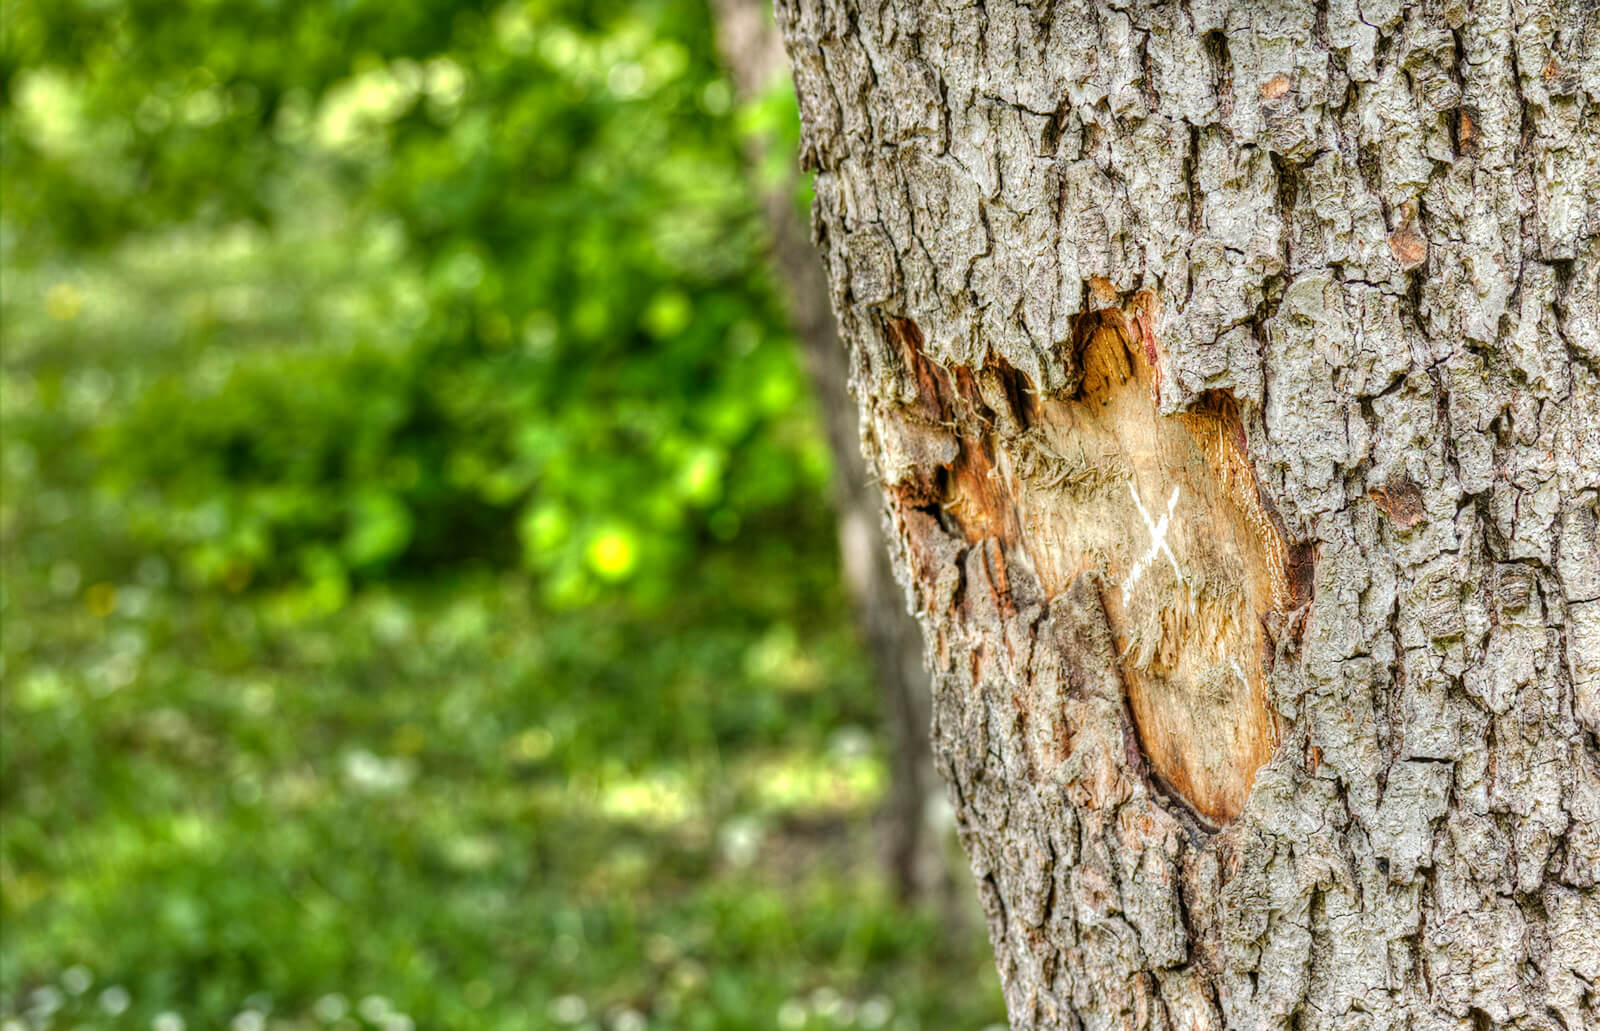 How To Save A Tree With Damaged Bark Lovetoknow